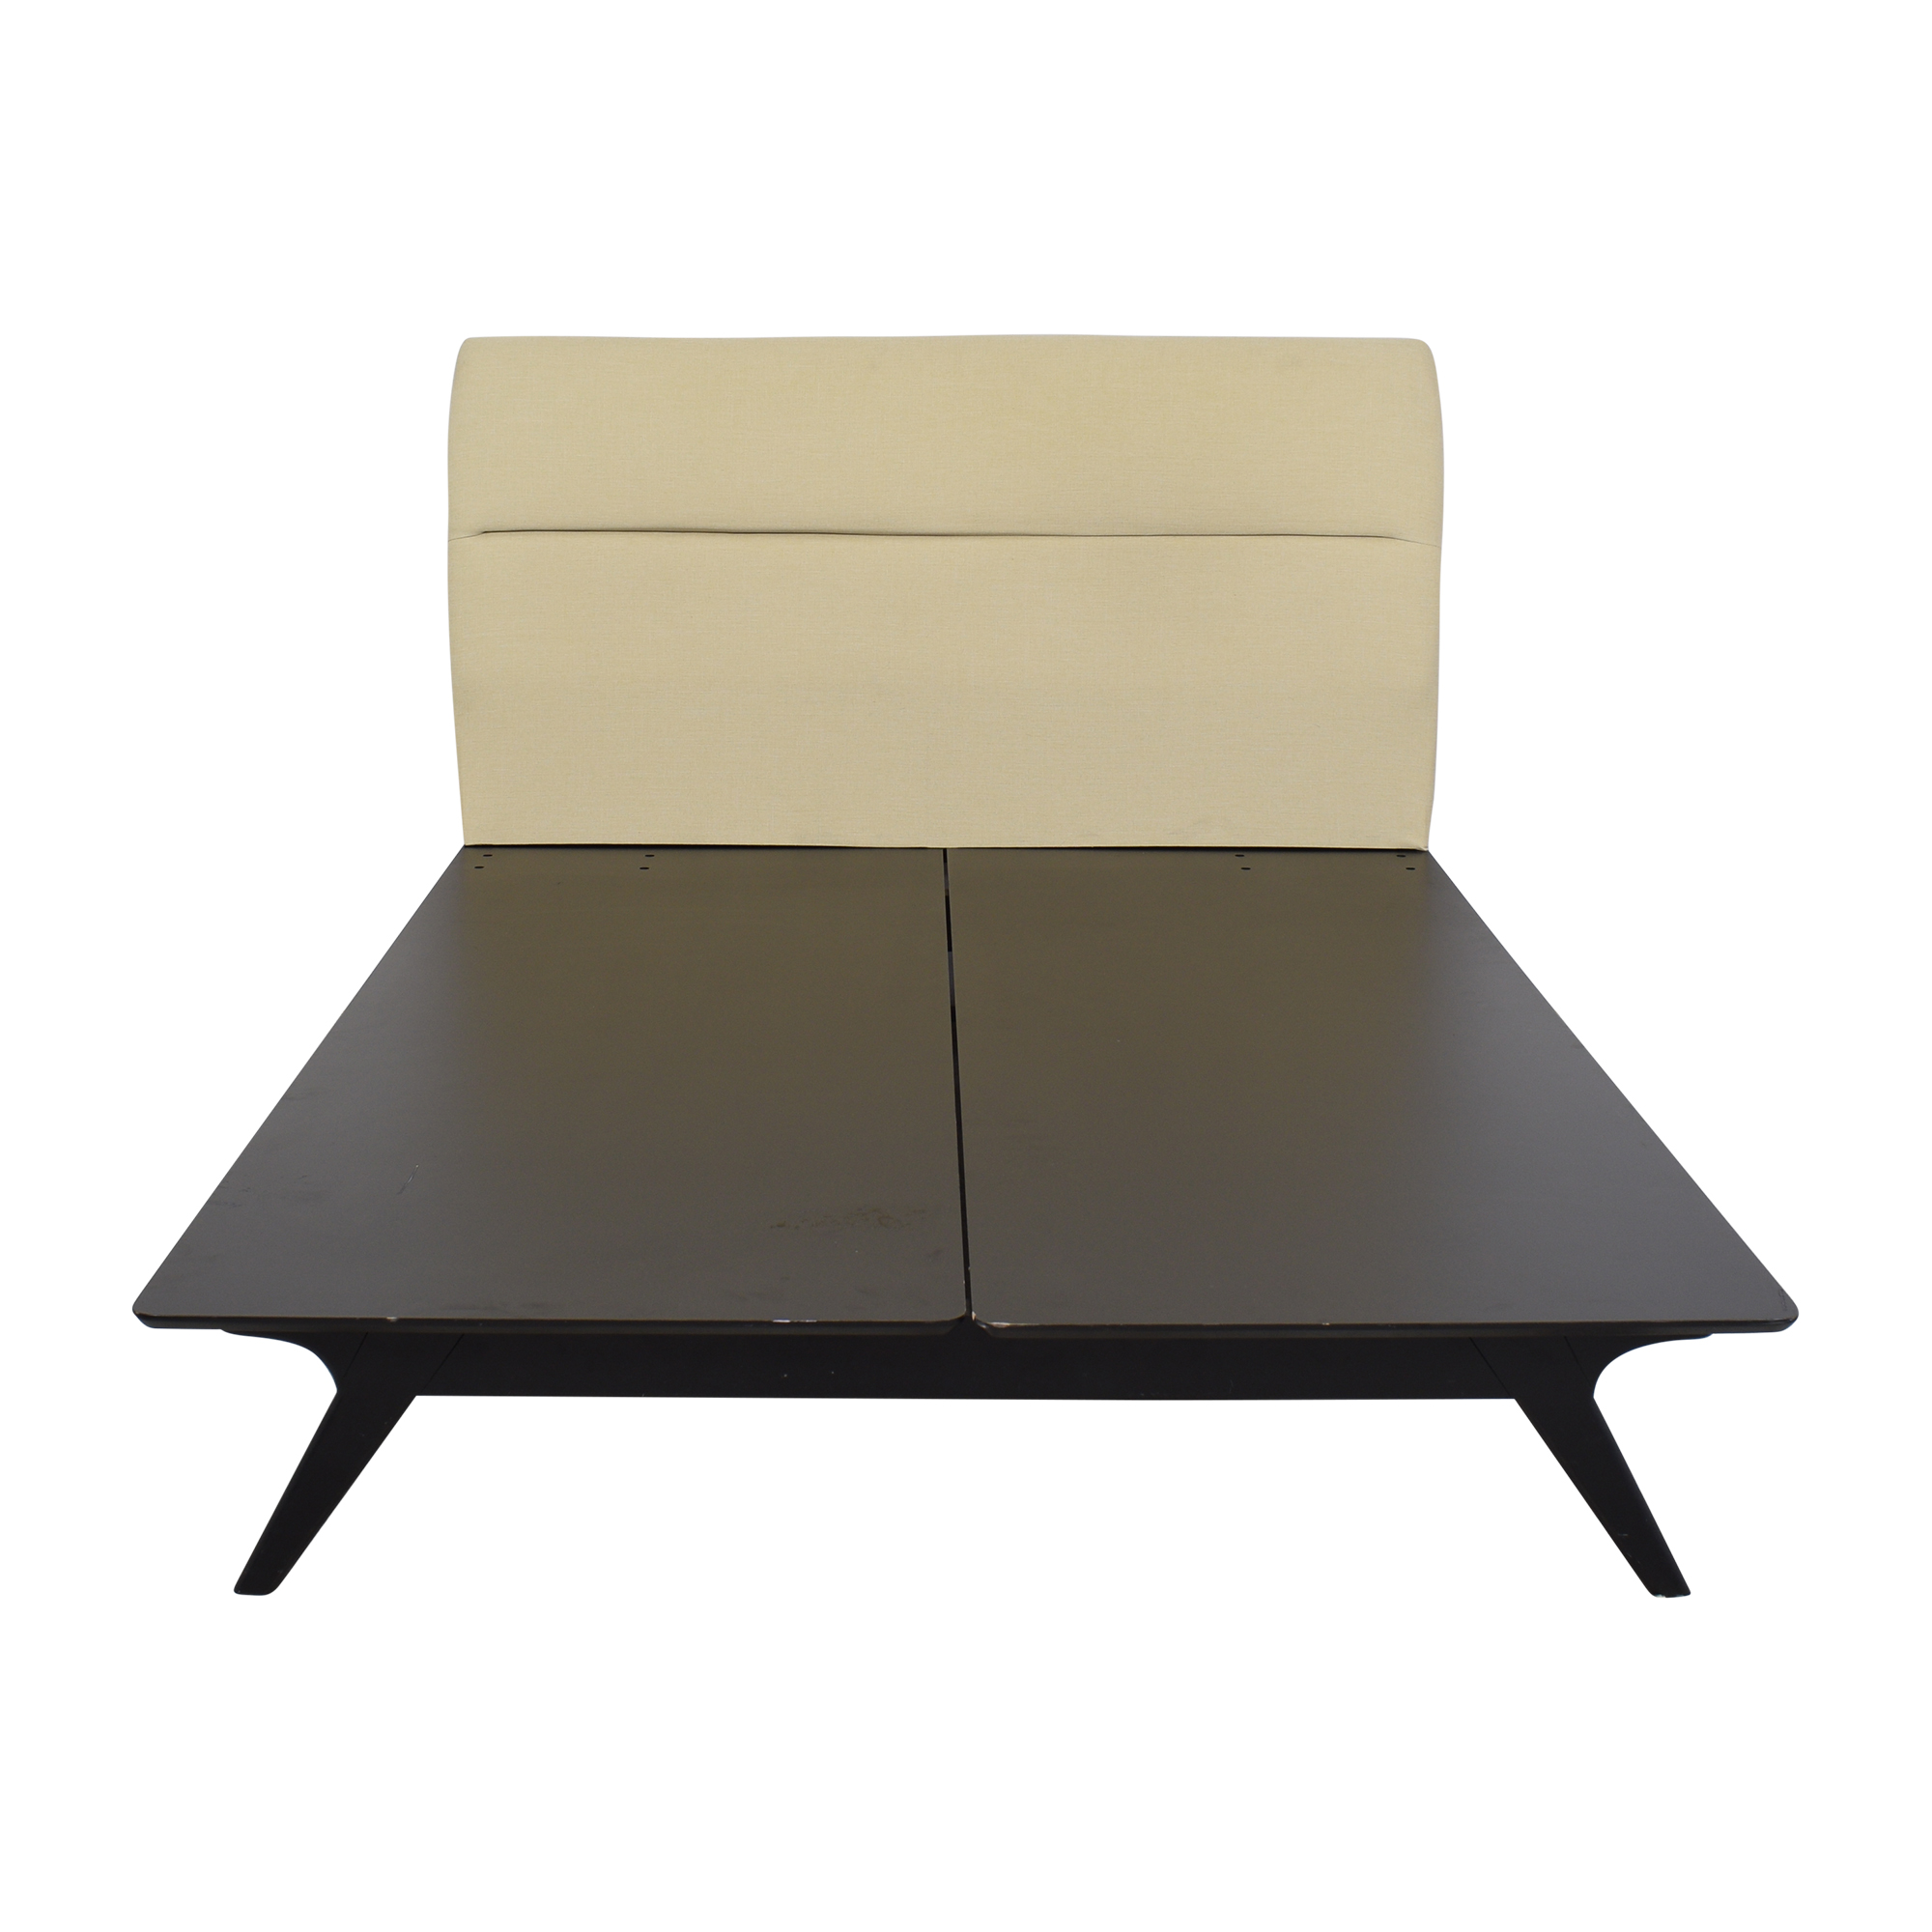 Modway Modway Addison Mid-Century Modern Upholstered Queen Platform Bed used